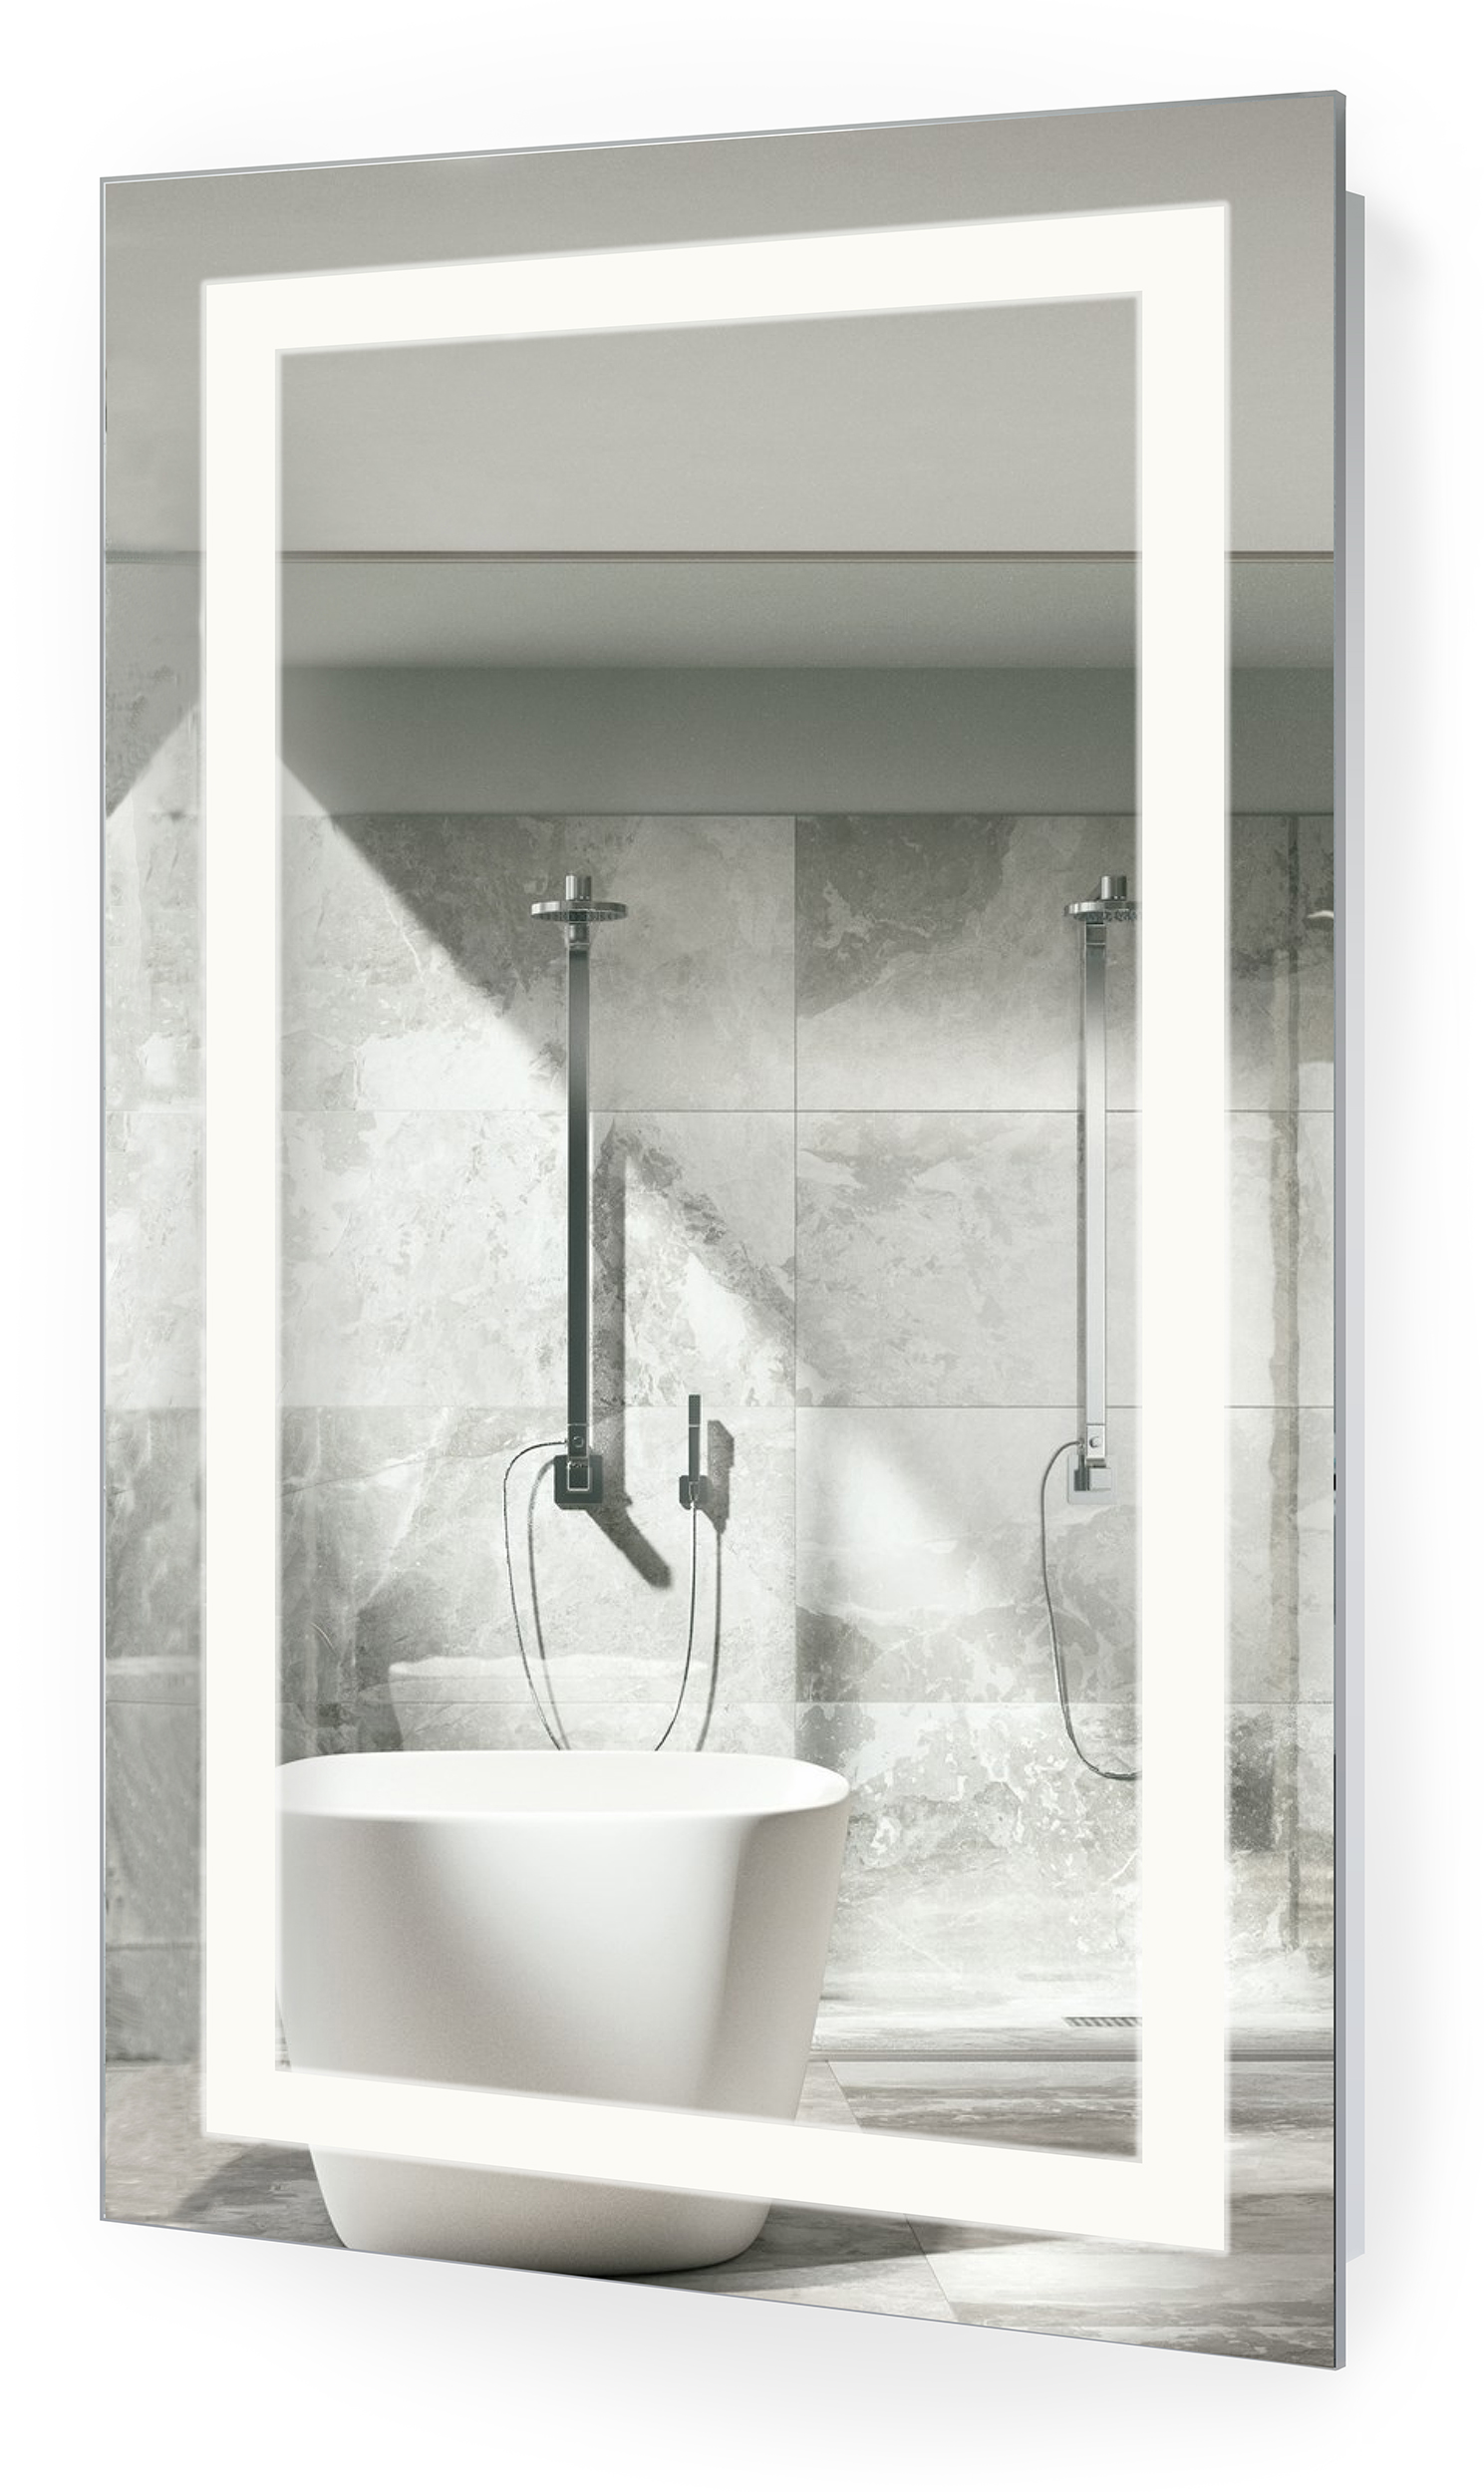 Bathroom Mirror Defogger - The icon bathroom mirror has simple aesthetic styling that blends function with sophistication you can hang the lighted mirror vertically or horizontally